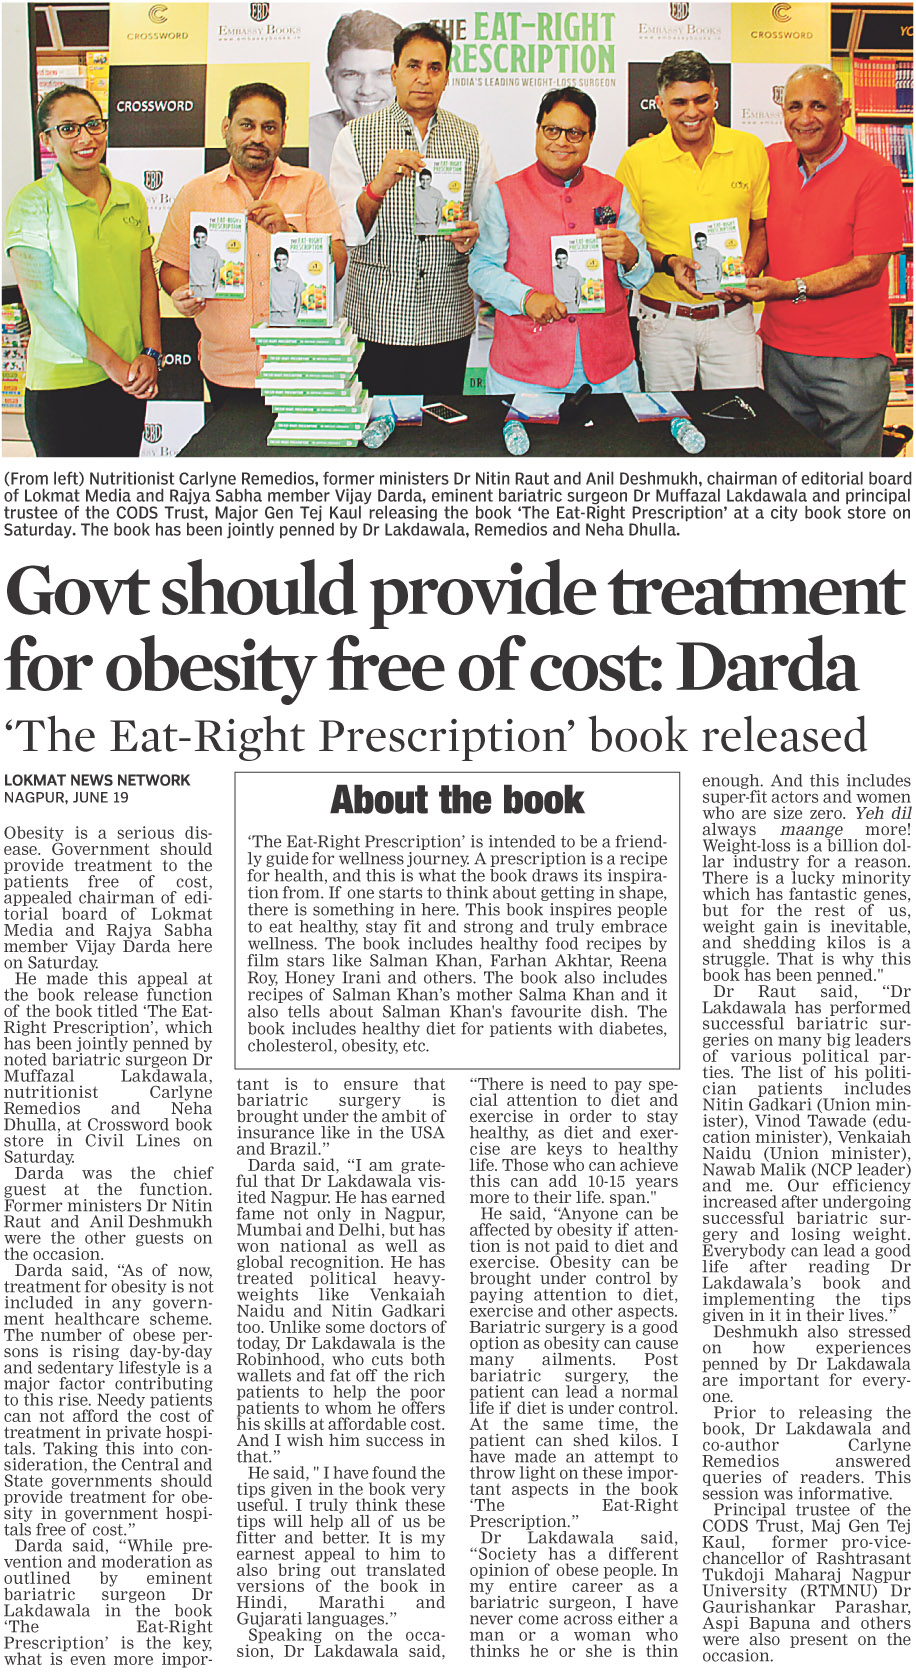 Govt should provide treatment for obesity free of cost: Darda